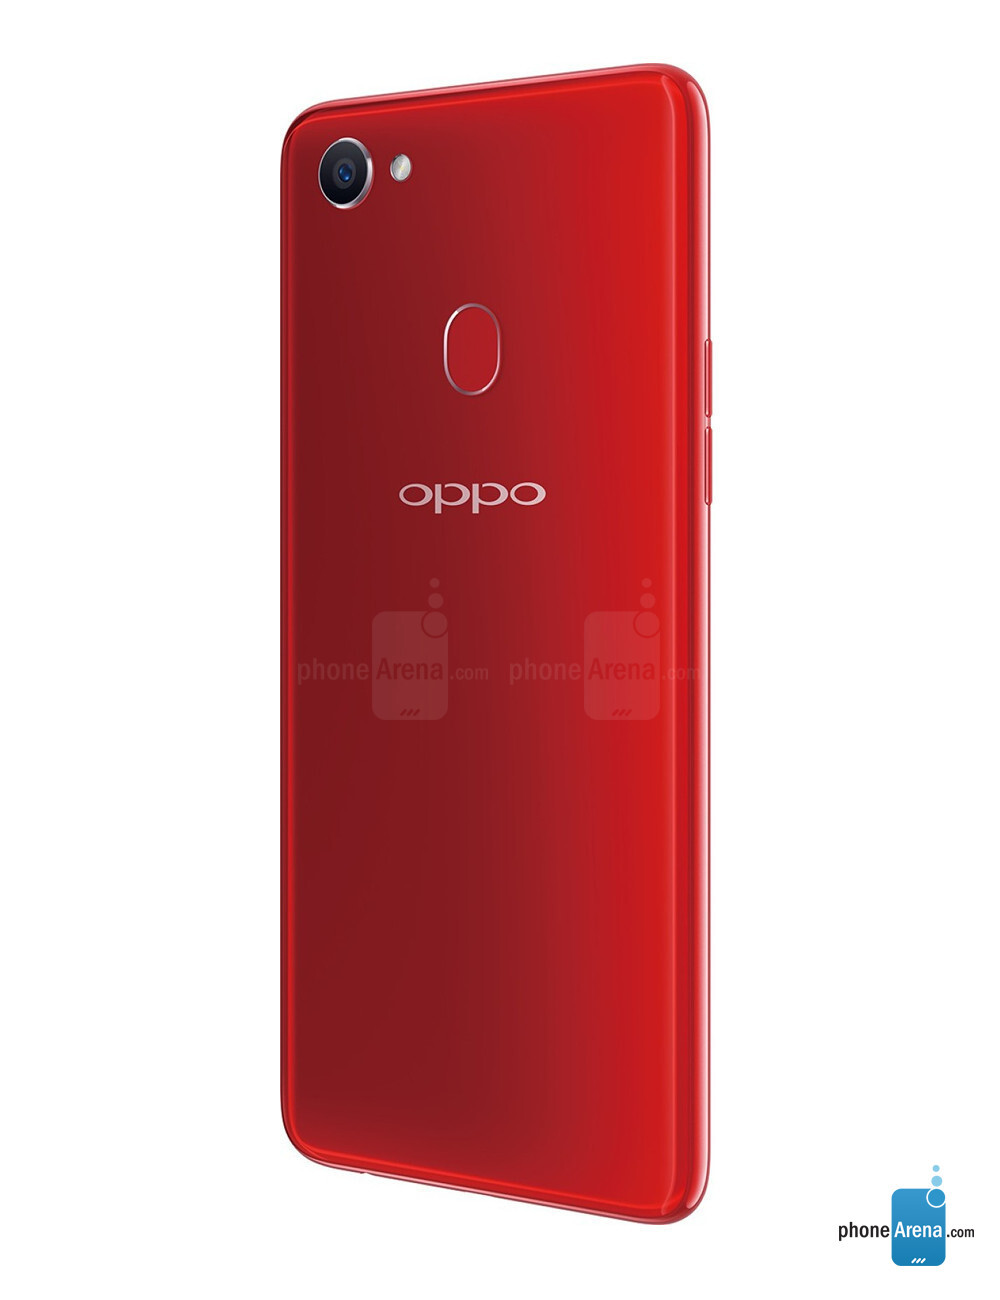 OPPO Mobile for Smartphones & Accessories - OPPO Global ...